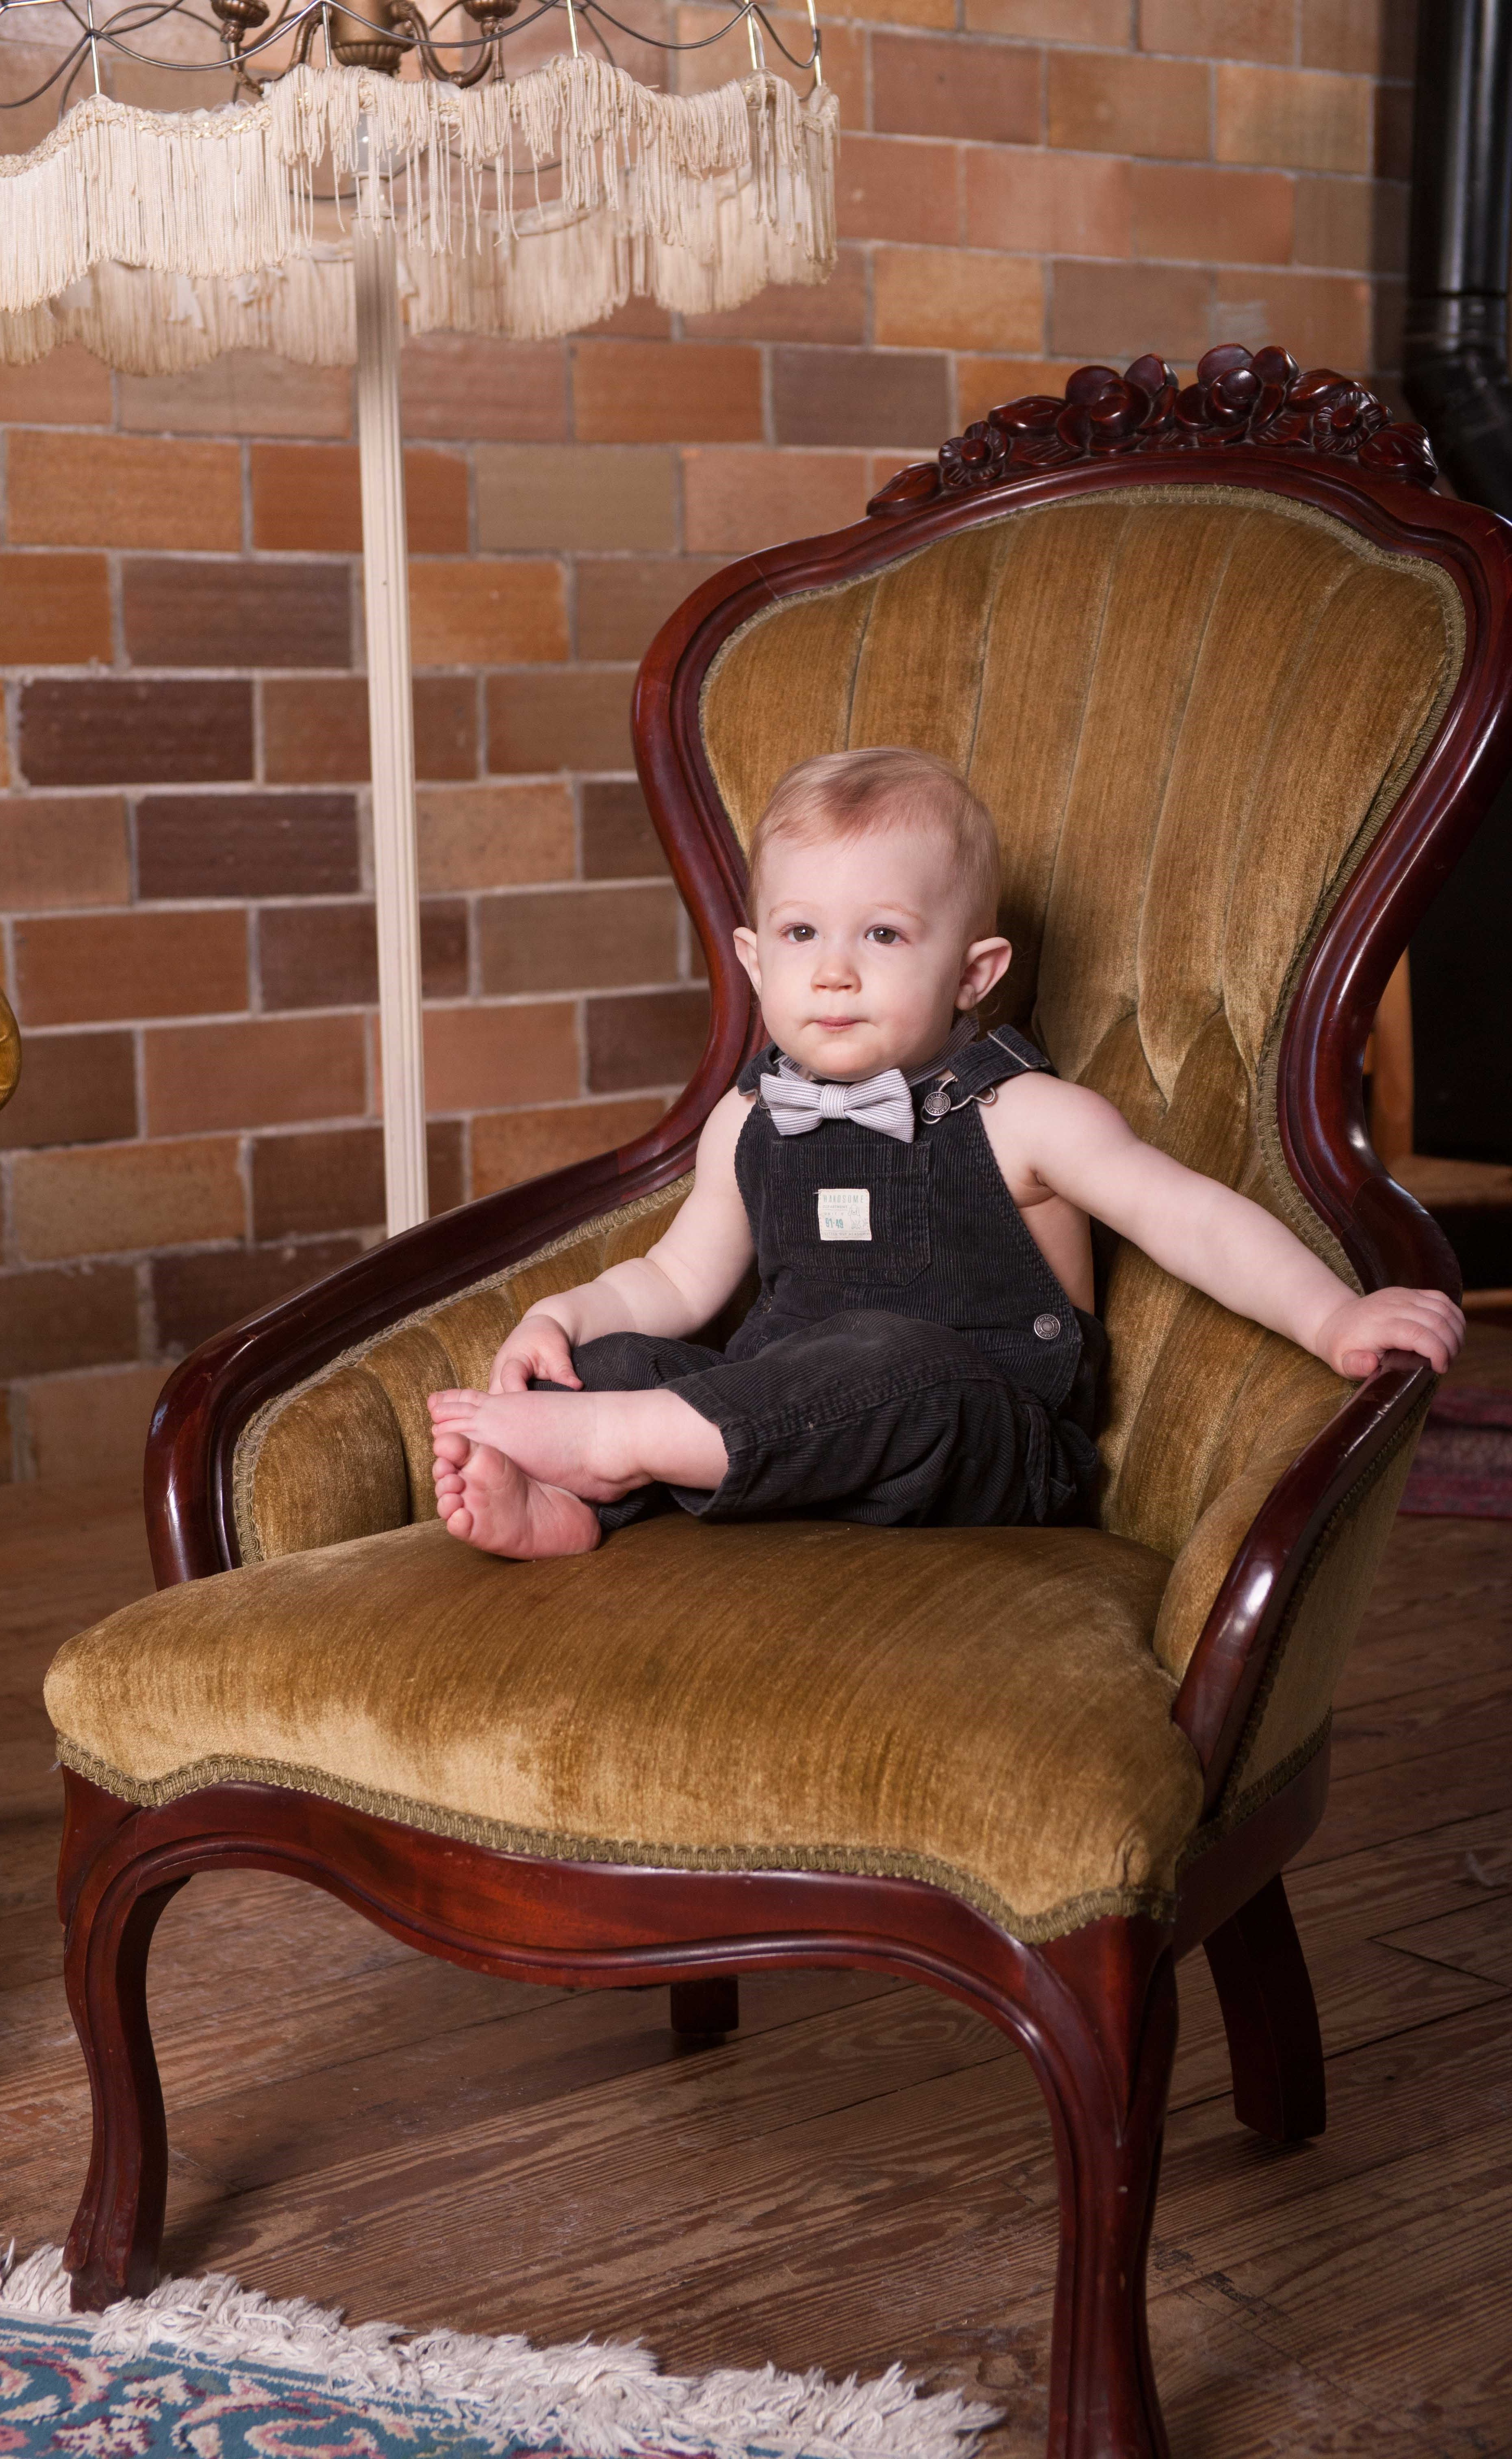 Sweet Little Boy In A Victorian Chair Wearing Bibs And A Bow Tie Victorian Chair Chair High Chair